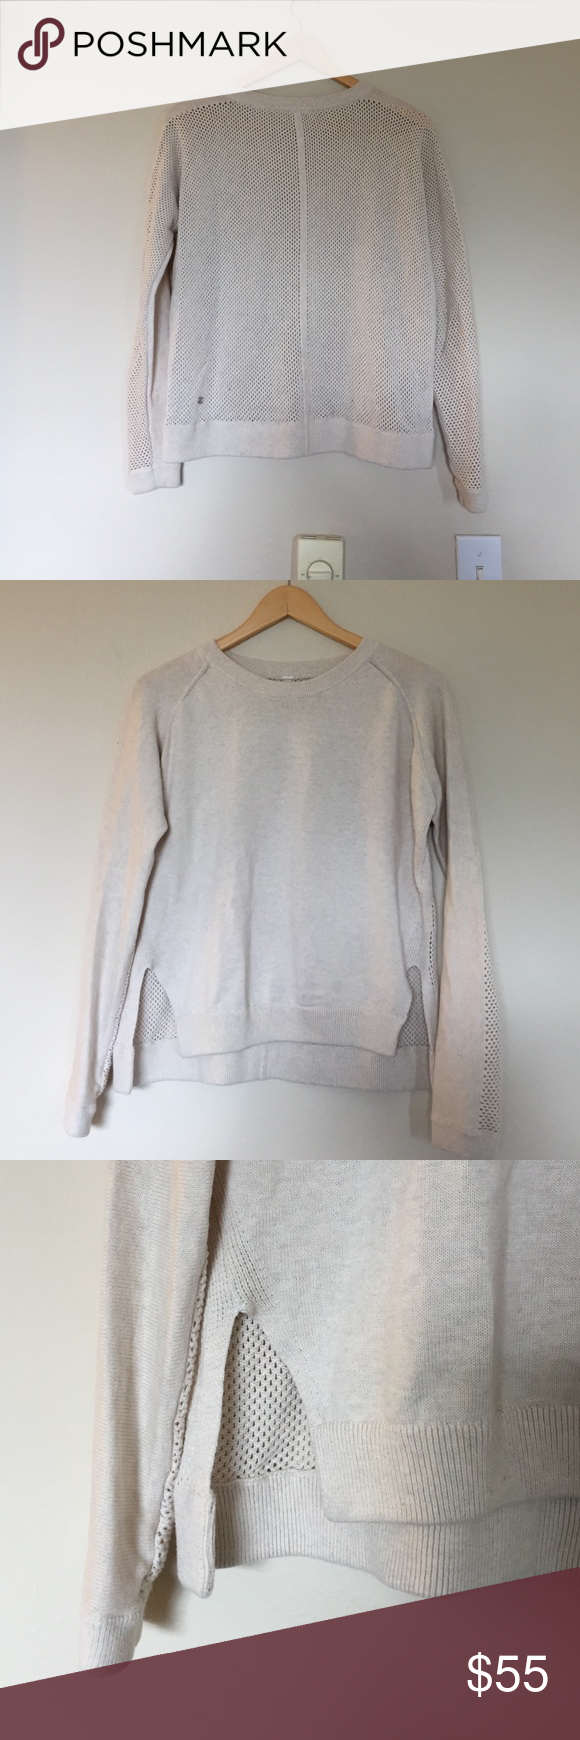 Lululemon Cream Open Back Sweater Lululemon cream crewneck sweater. Playful open knot look in back and along backside of arms. Slightly higher in front with 3 inch side slits on both sides. Size tag removed but I believe was a small (4-6). In excellent condition. lululemon athletica Sweaters Crew & Scoop Necks